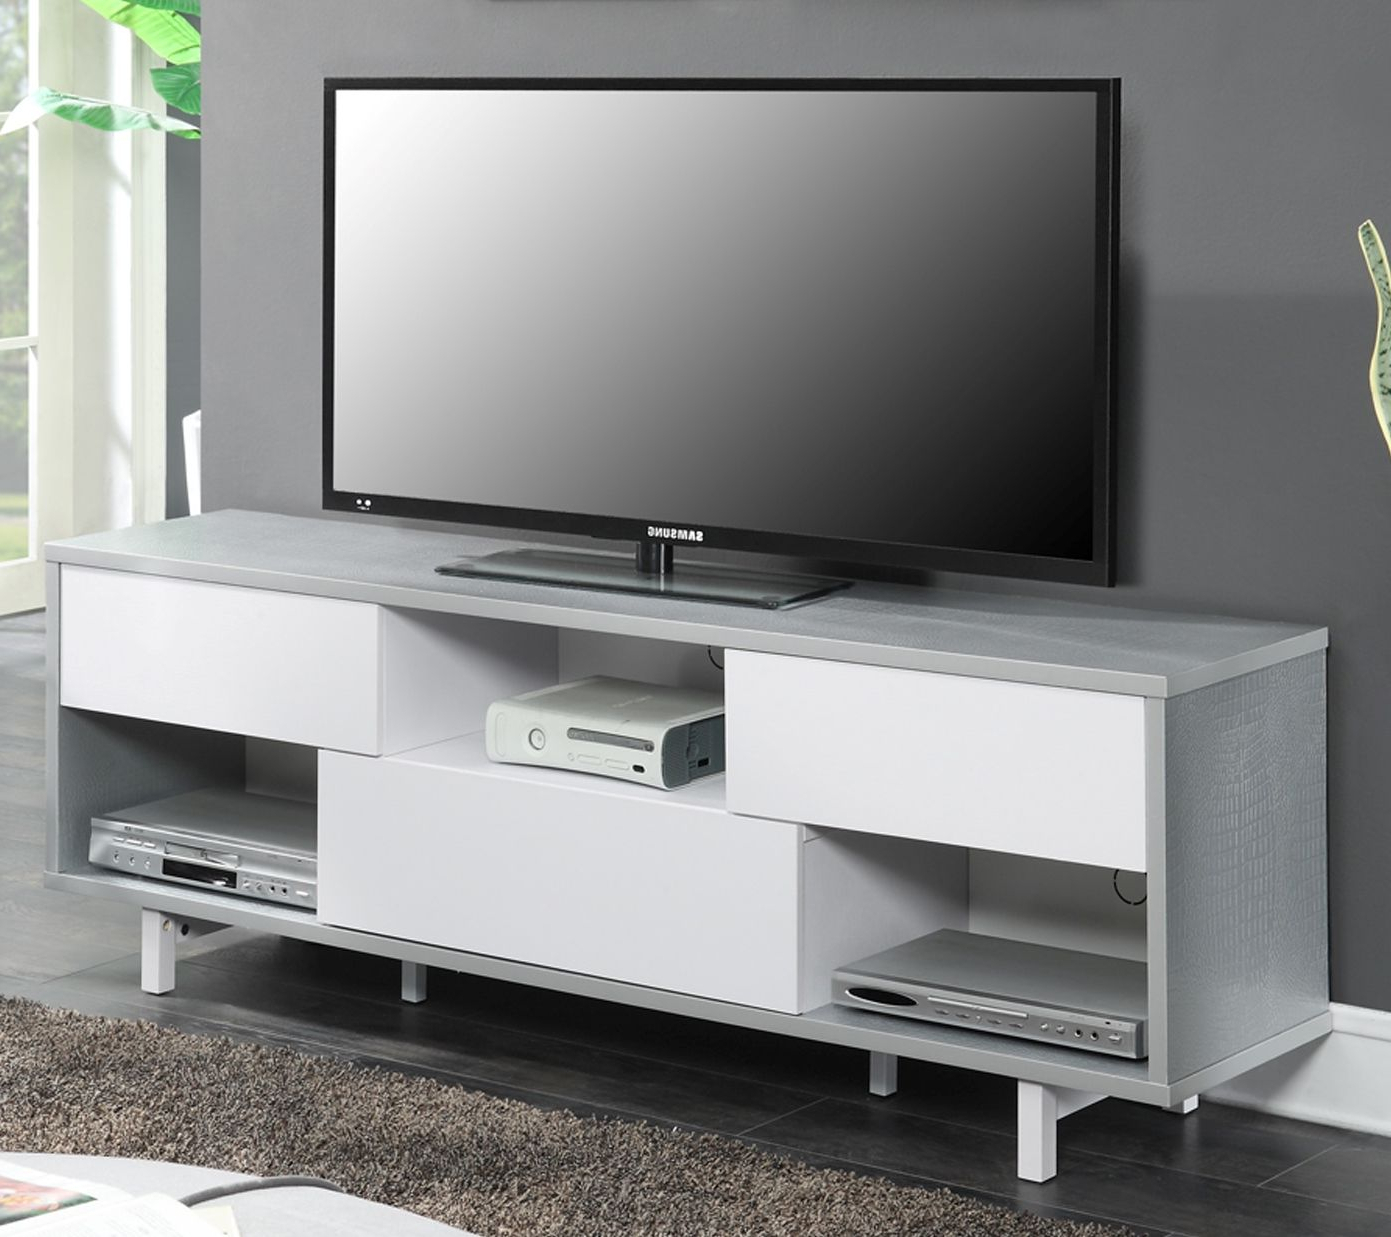 """Favorite Newport Ventura 60"""" Tv Stand In Weathered Gray/white /w With Regard To Convenience Concepts Newport Marbella 60"""" Tv Stands (View 9 of 10)"""